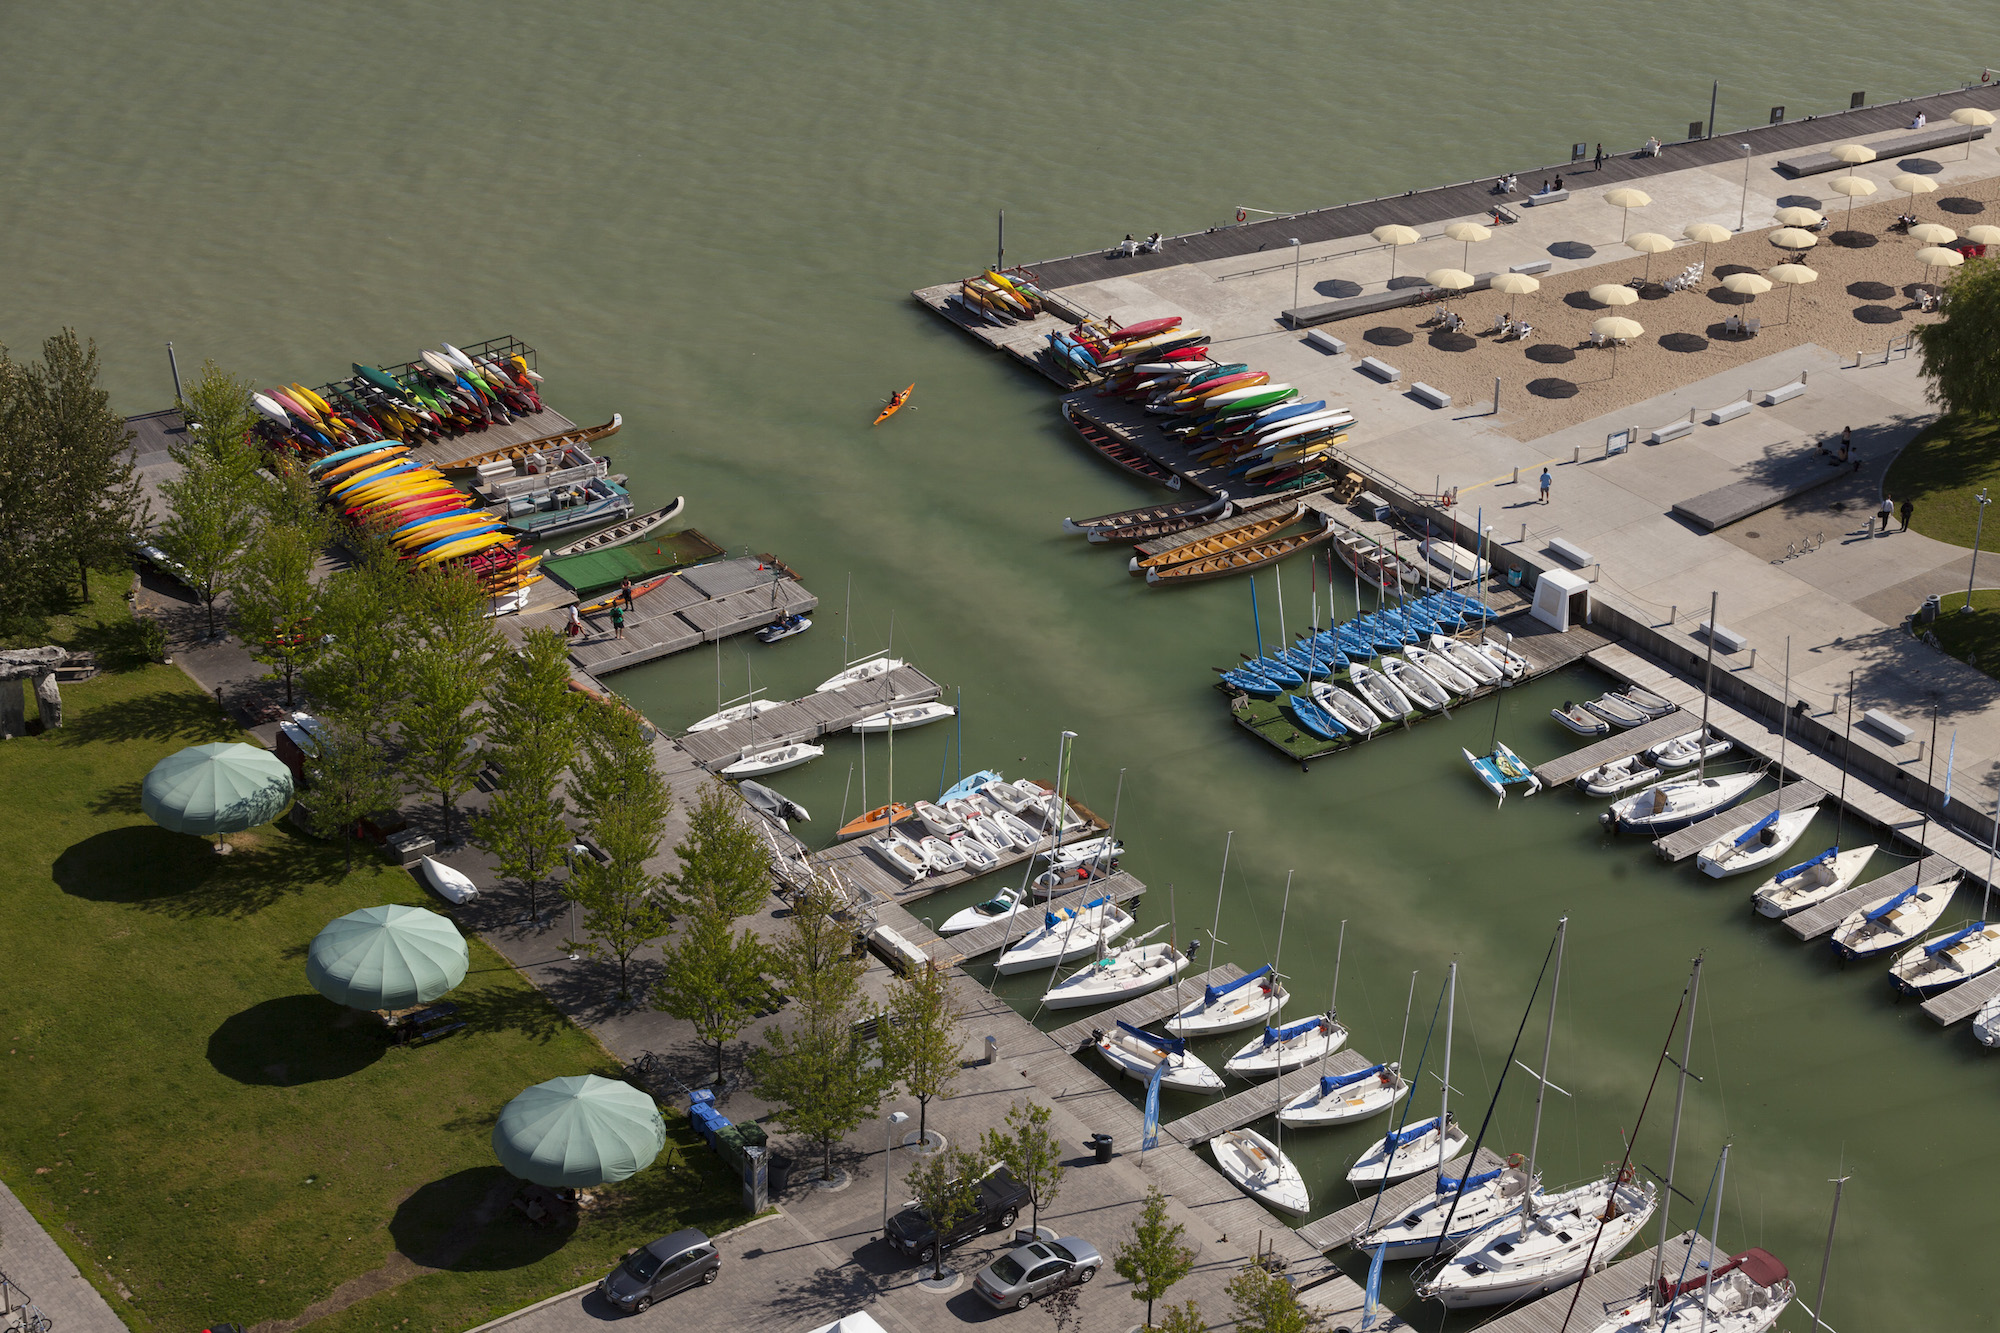 cso wastewater in harbour aerial view